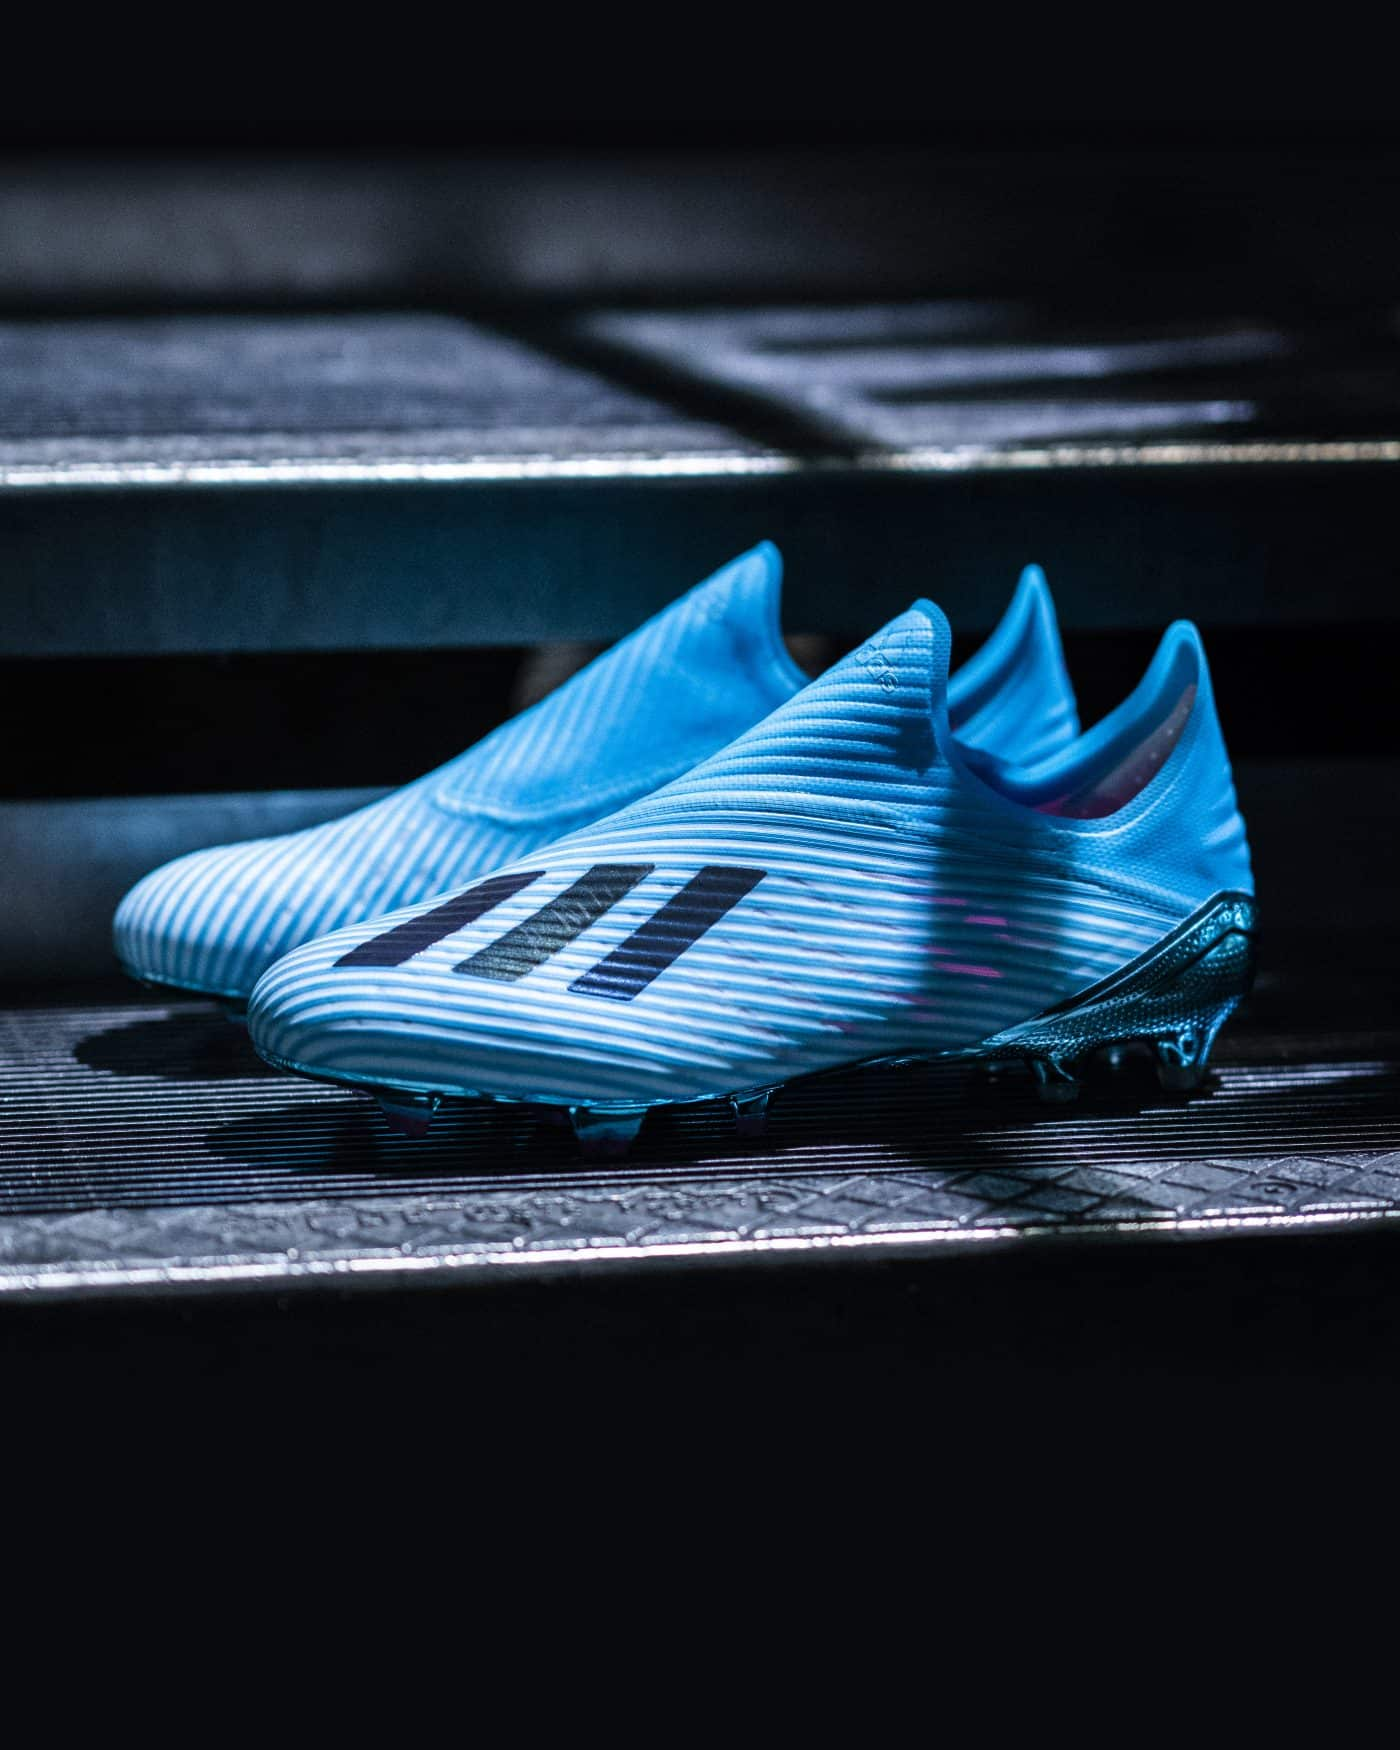 adidas-x-19-pack-hard-wired-juillet-2019-5